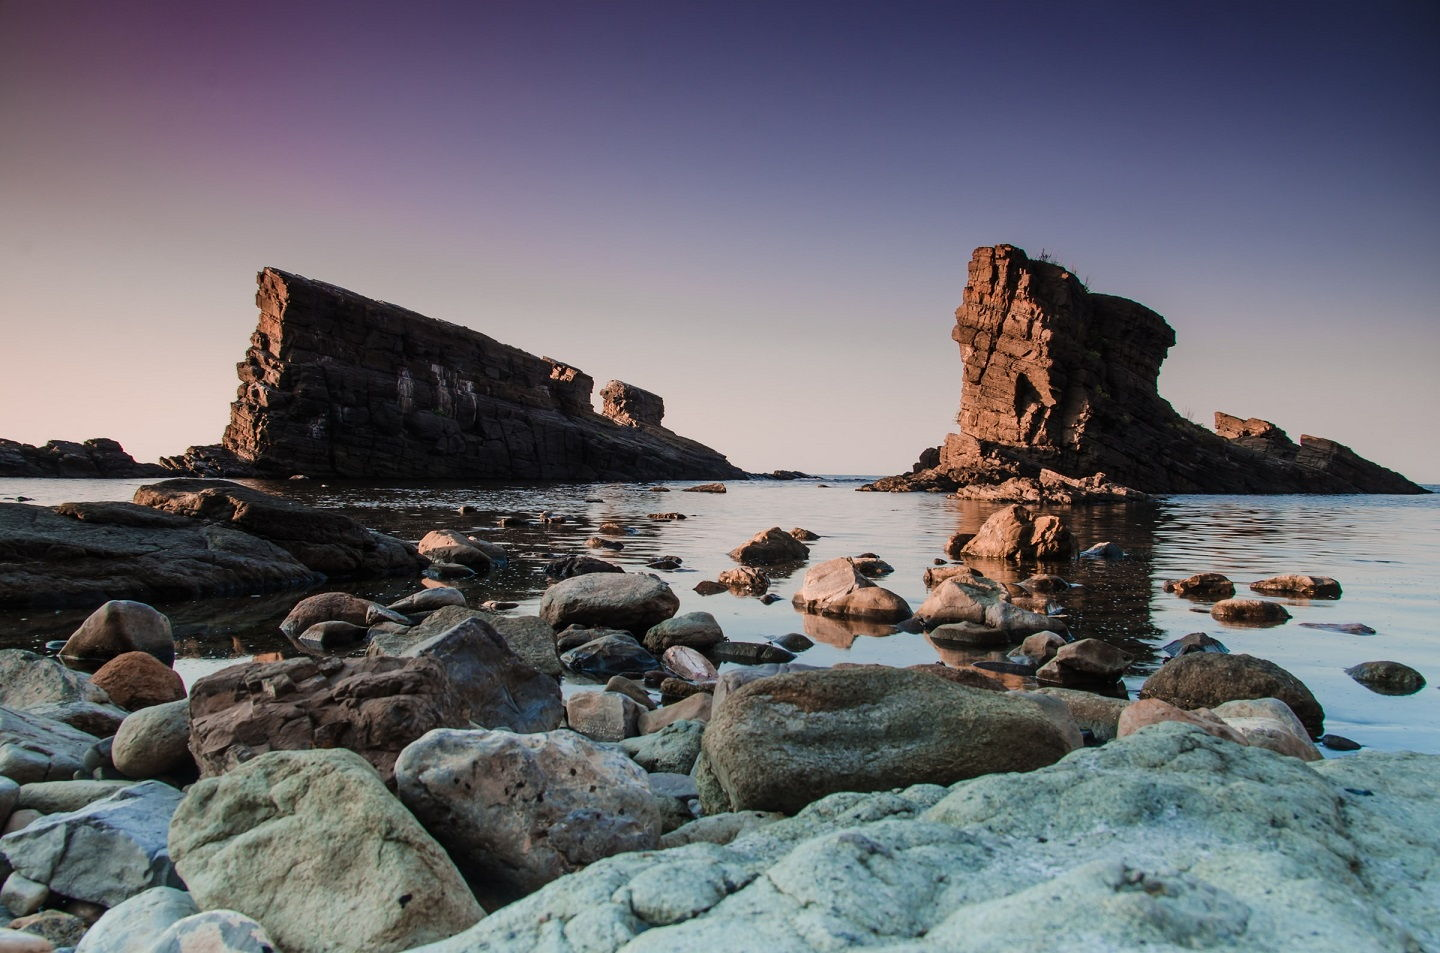 The Stone Ships rock formation in Sinemorets, Bulgaria